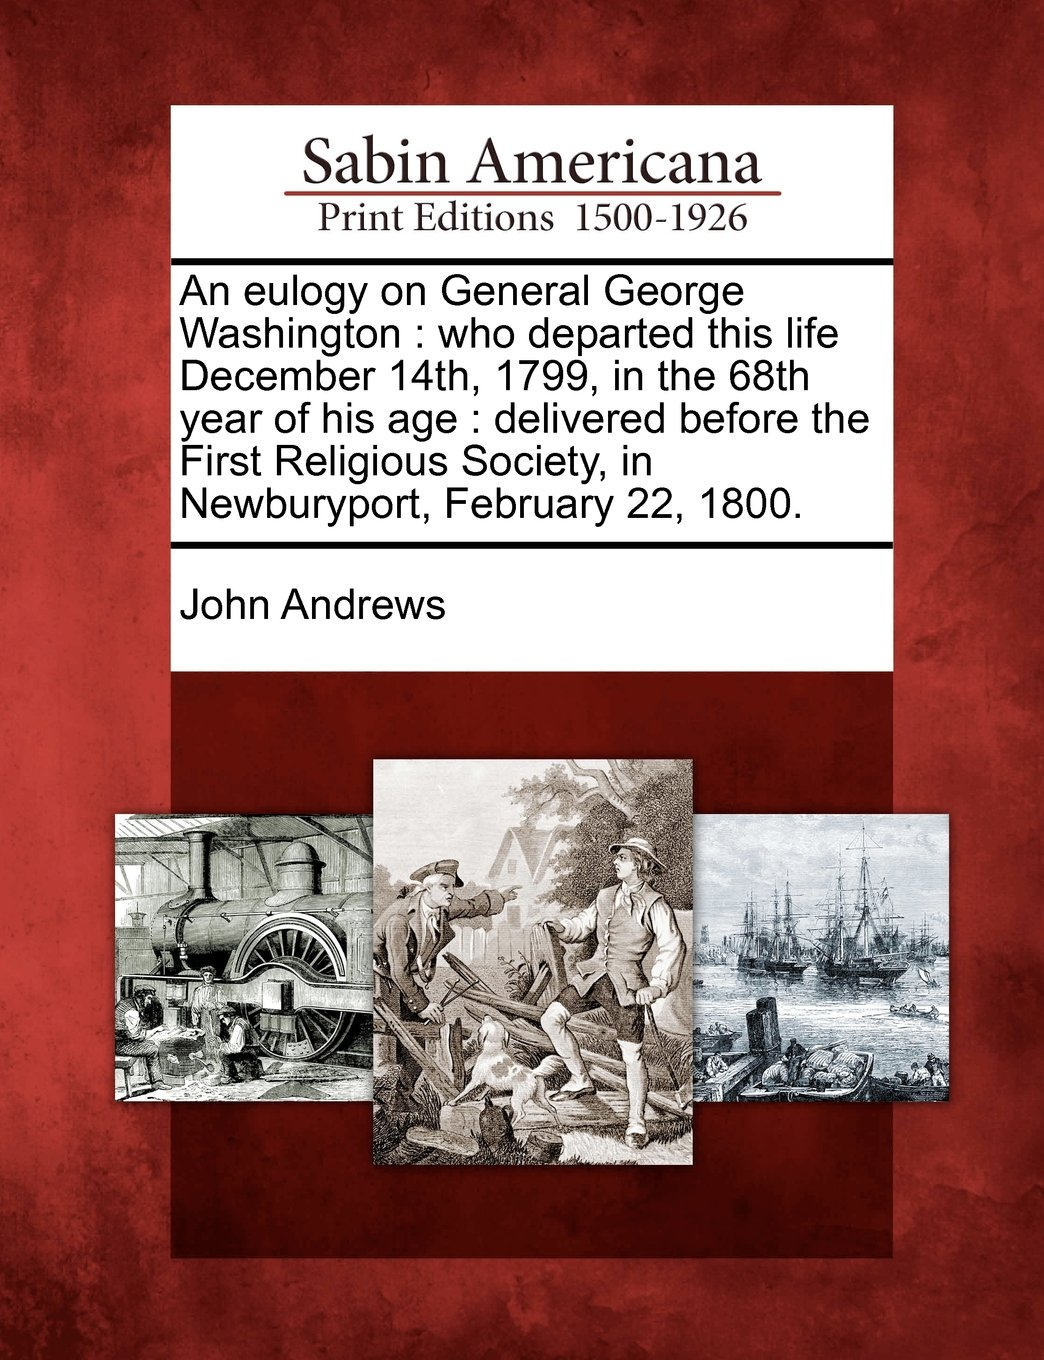 Download An eulogy on General George Washington: who departed this life December 14th, 1799, in the 68th year of his age : delivered before the First Religious Society, in Newburyport, February 22, 1800. PDF ePub fb2 book